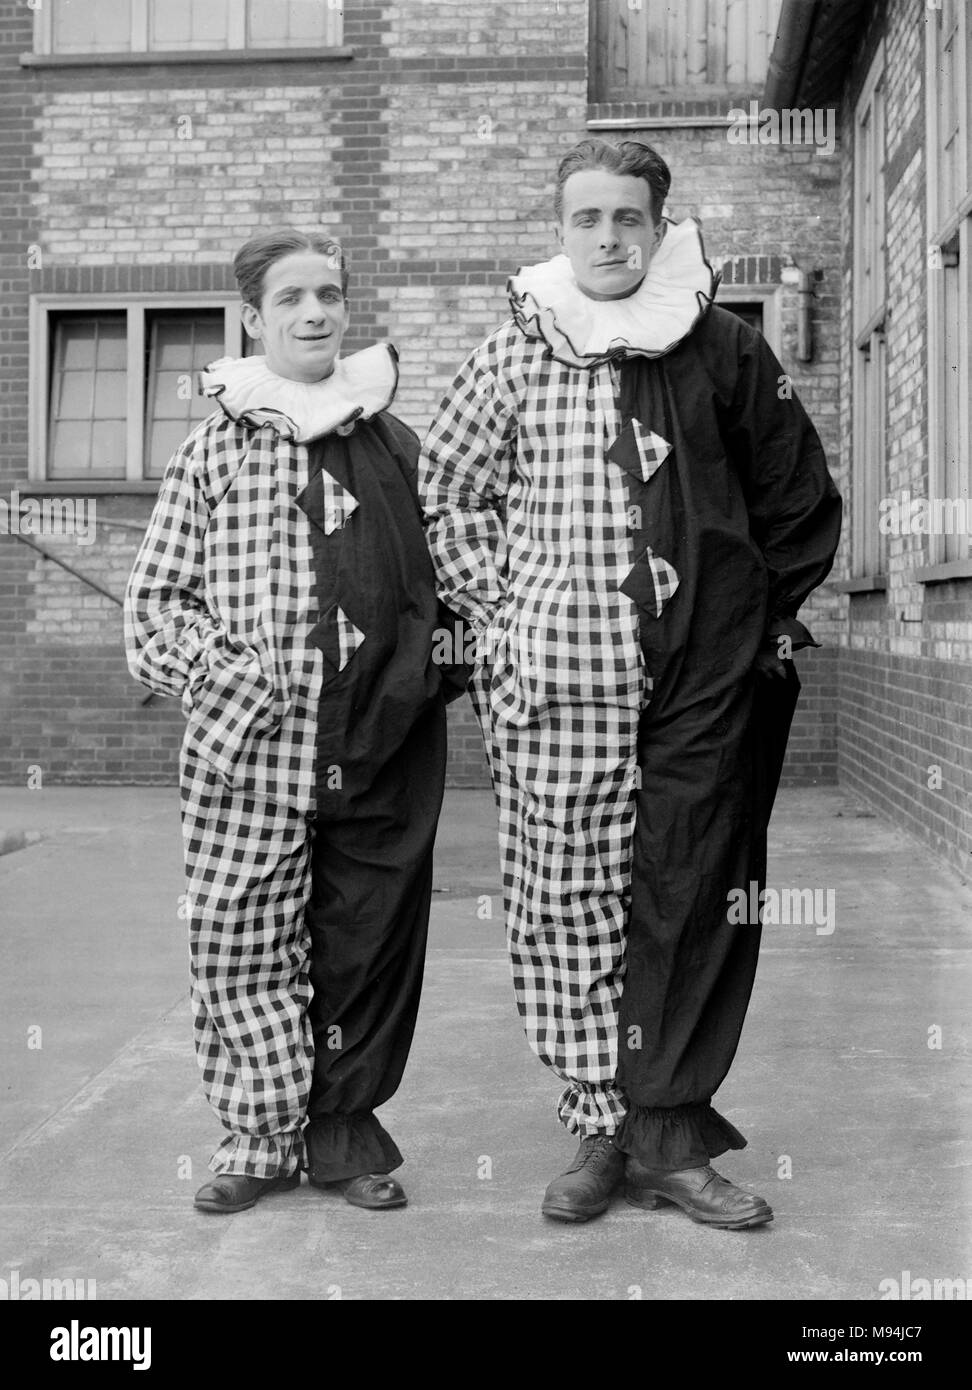 Two clowns of the Pierrot style pose in the UK, ca. 1920. - Stock Image